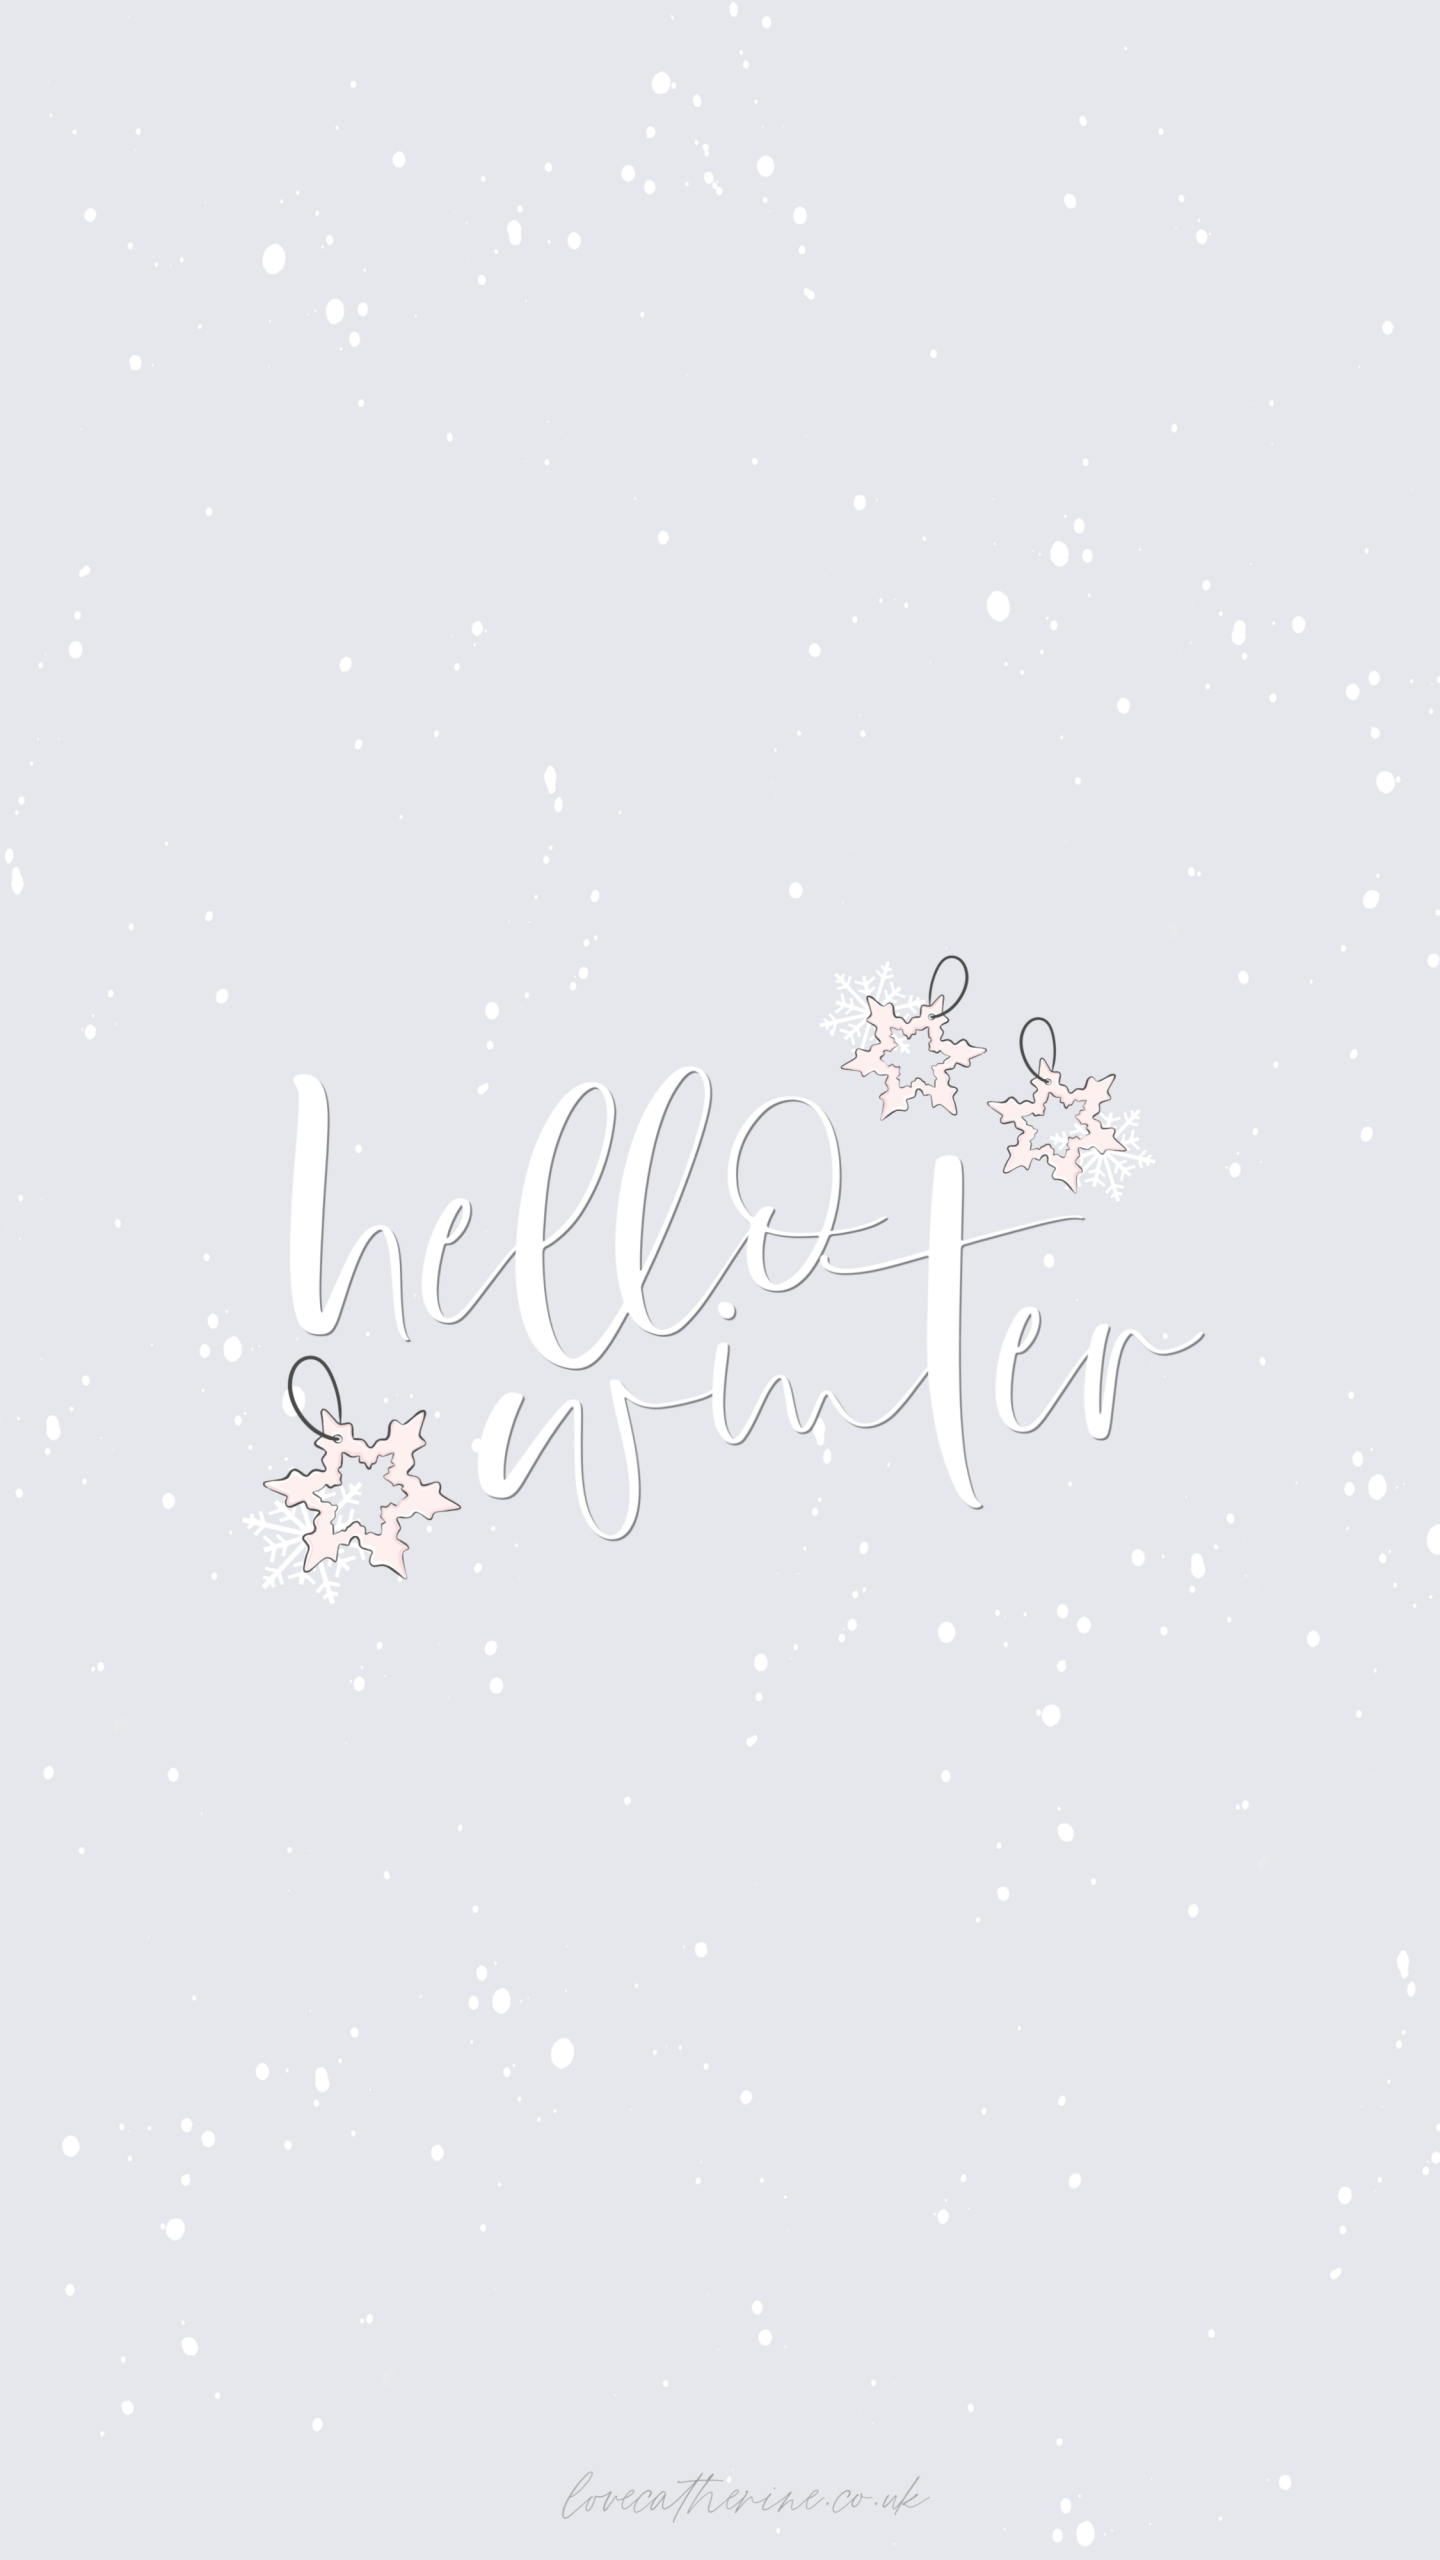 Free Cute & Girly Winter Phone Wallpapers - Love Catherine